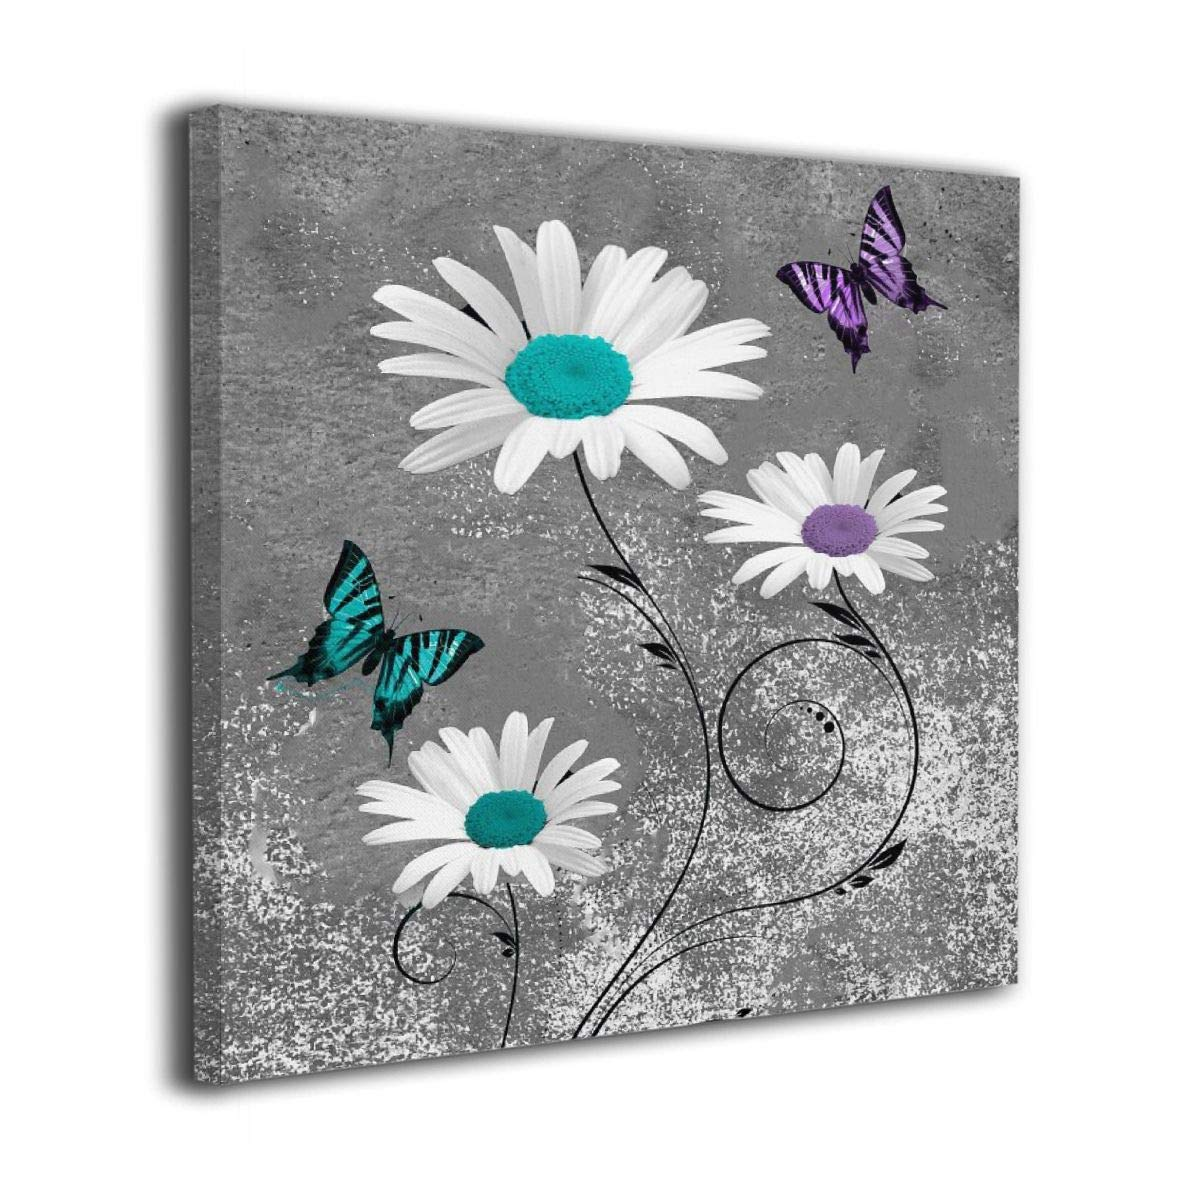 "Colla Canvas Print 12""x12"" Teal Purple Daisy Flower Butterflies Wall Art Giclee Print Gallery Wrap Modern Wall Decor for Bedroom Living Room Bathroom Framed Ready to Hang"